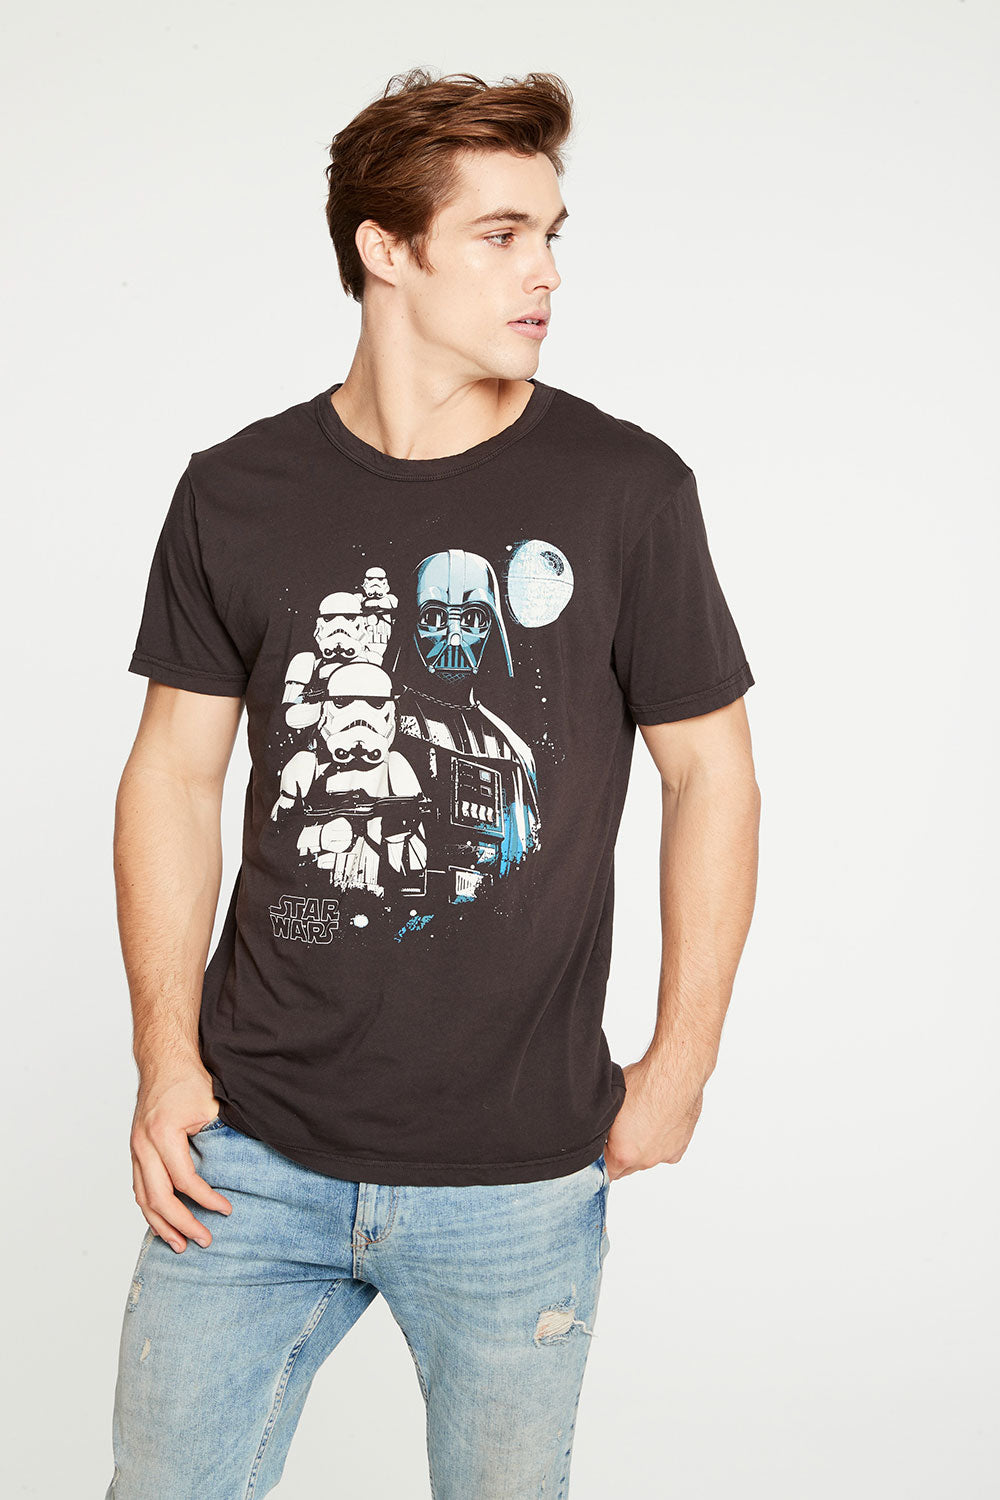 Star Wars - The Dark Side MENS chaserbrand4.myshopify.com